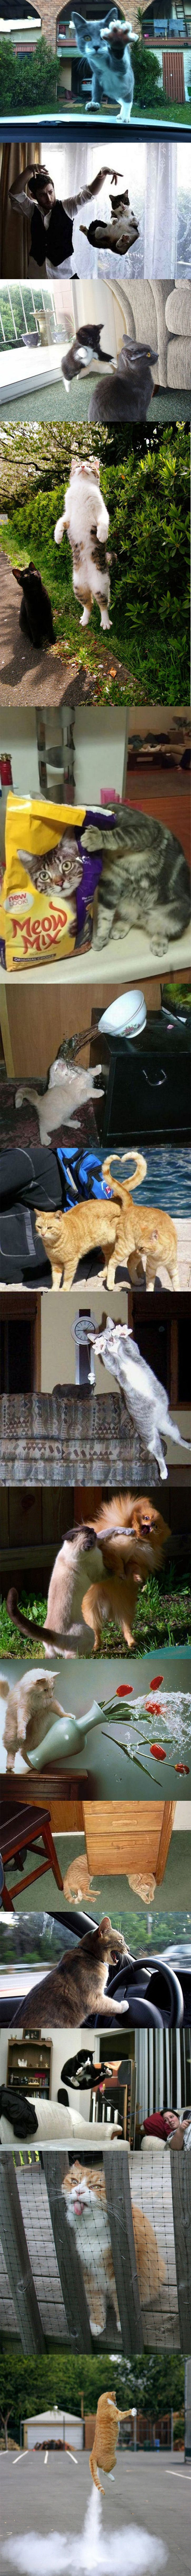 Kitty pictures that were timed perfectly. This is hilarious!